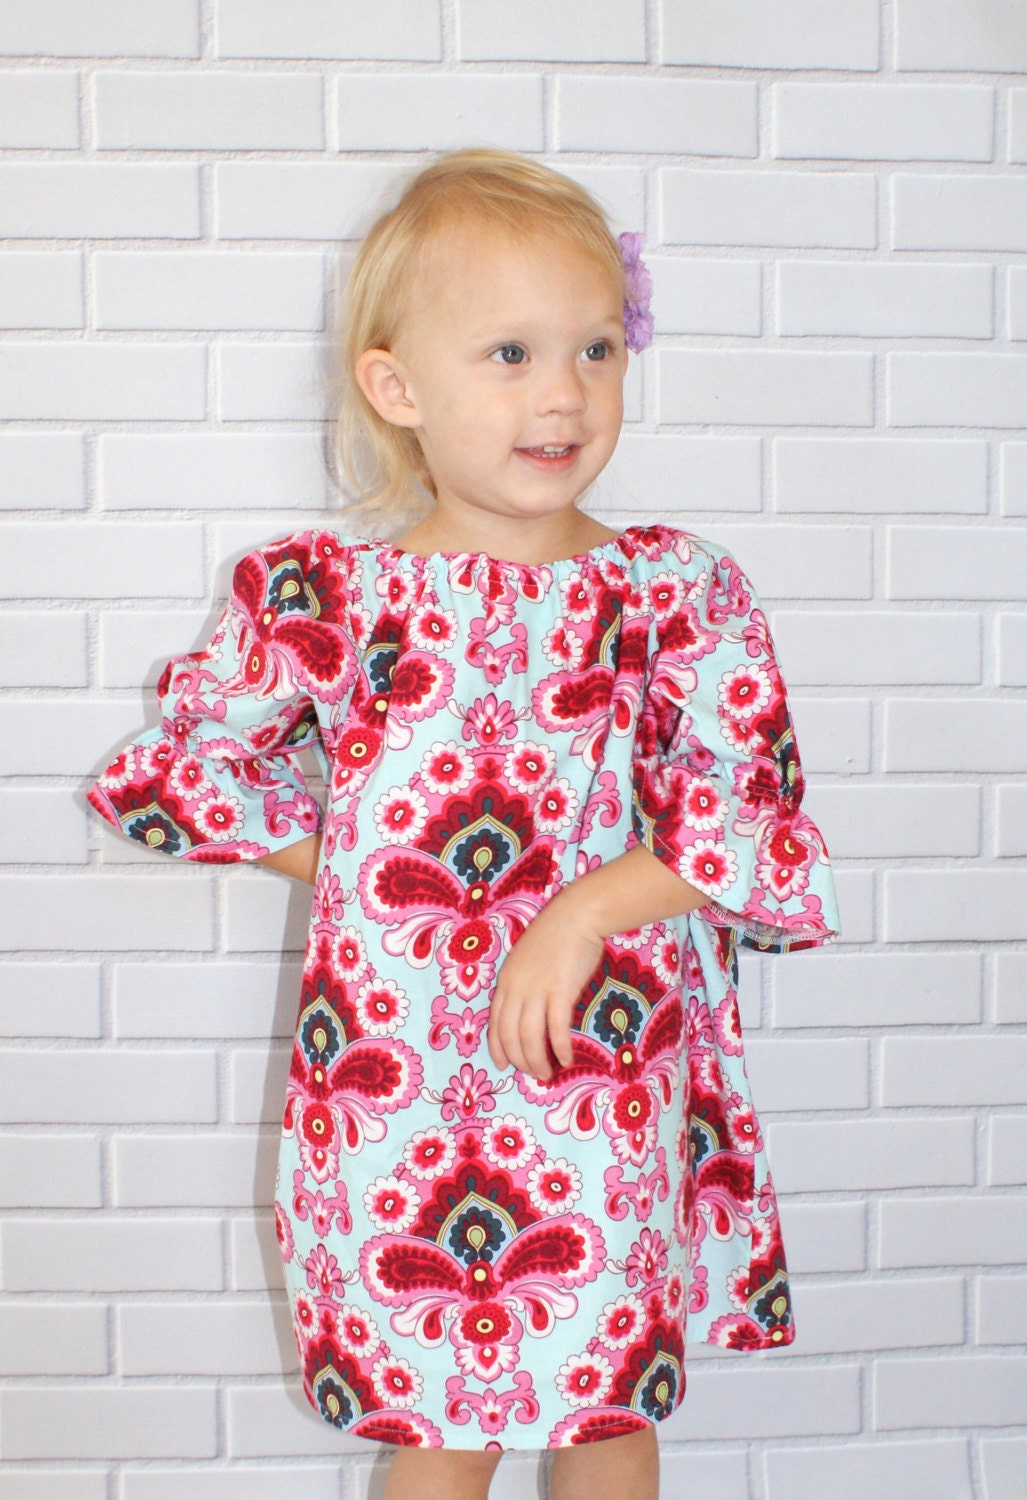 Girls Dress Sister Dress Winter Dress Toddler Baby Dress Christmas Dress Boutique Clothing By Lucky Lizzy's - LuckyLizzys